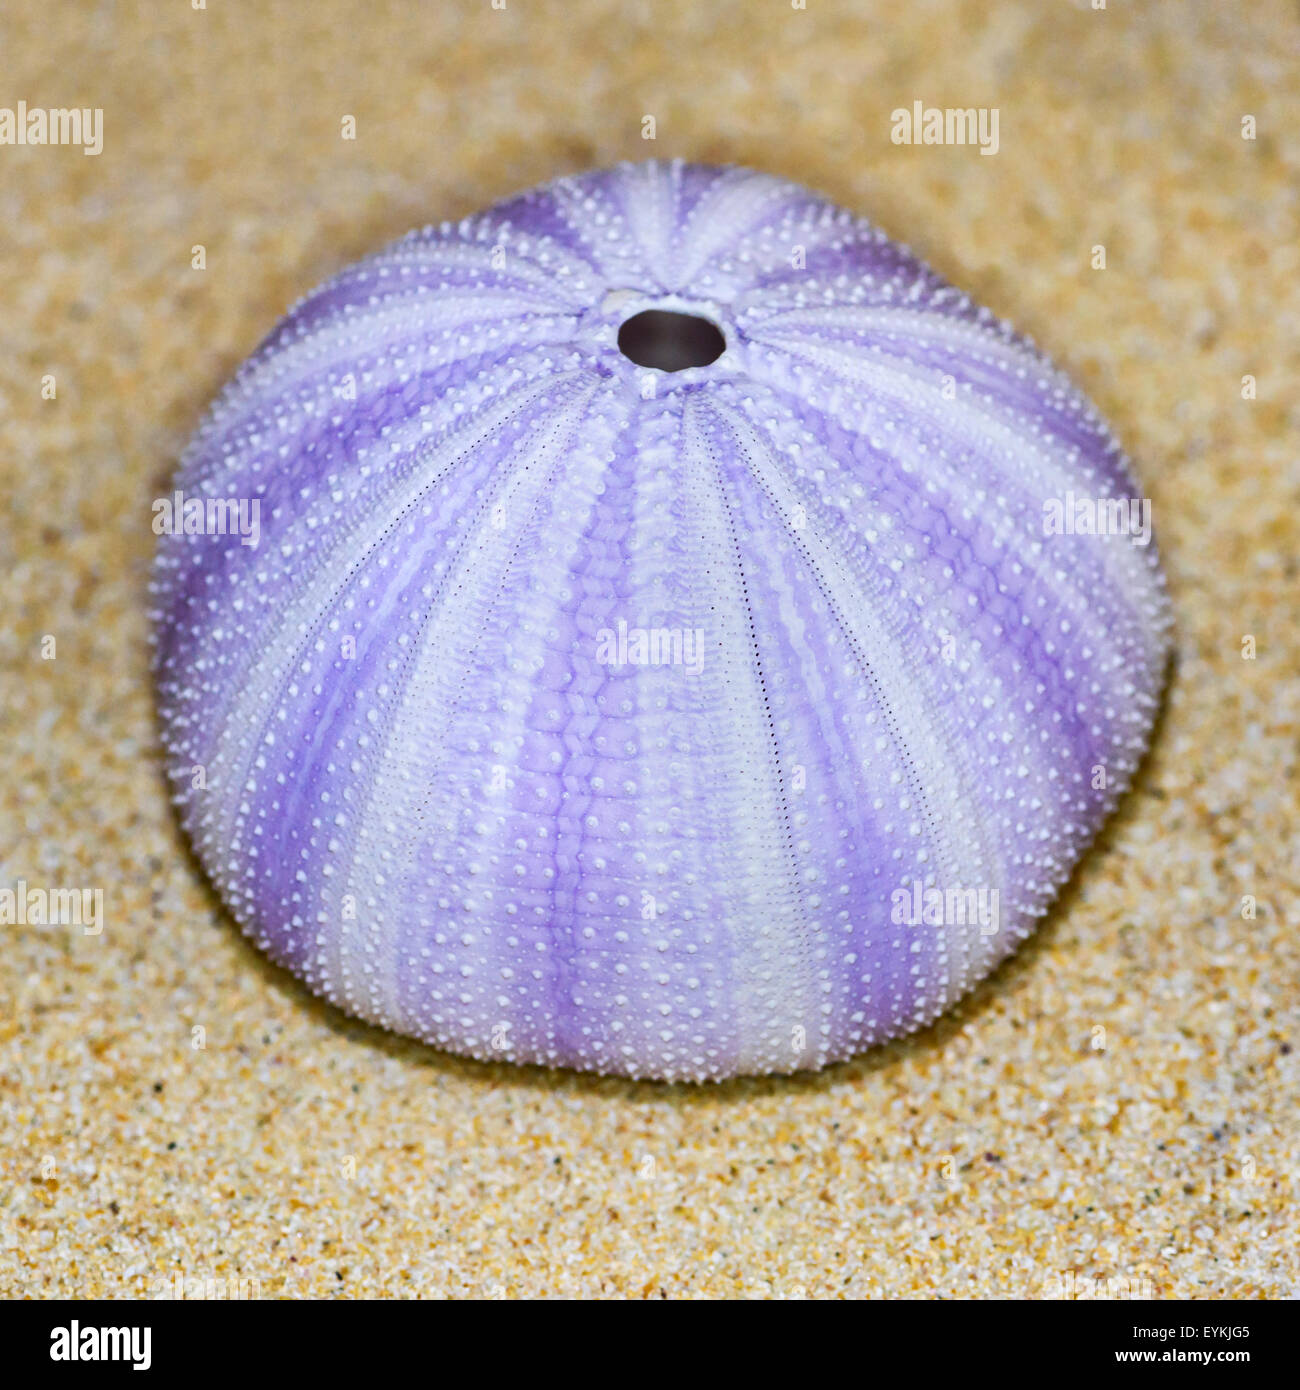 White sea urchin shell - photo#22